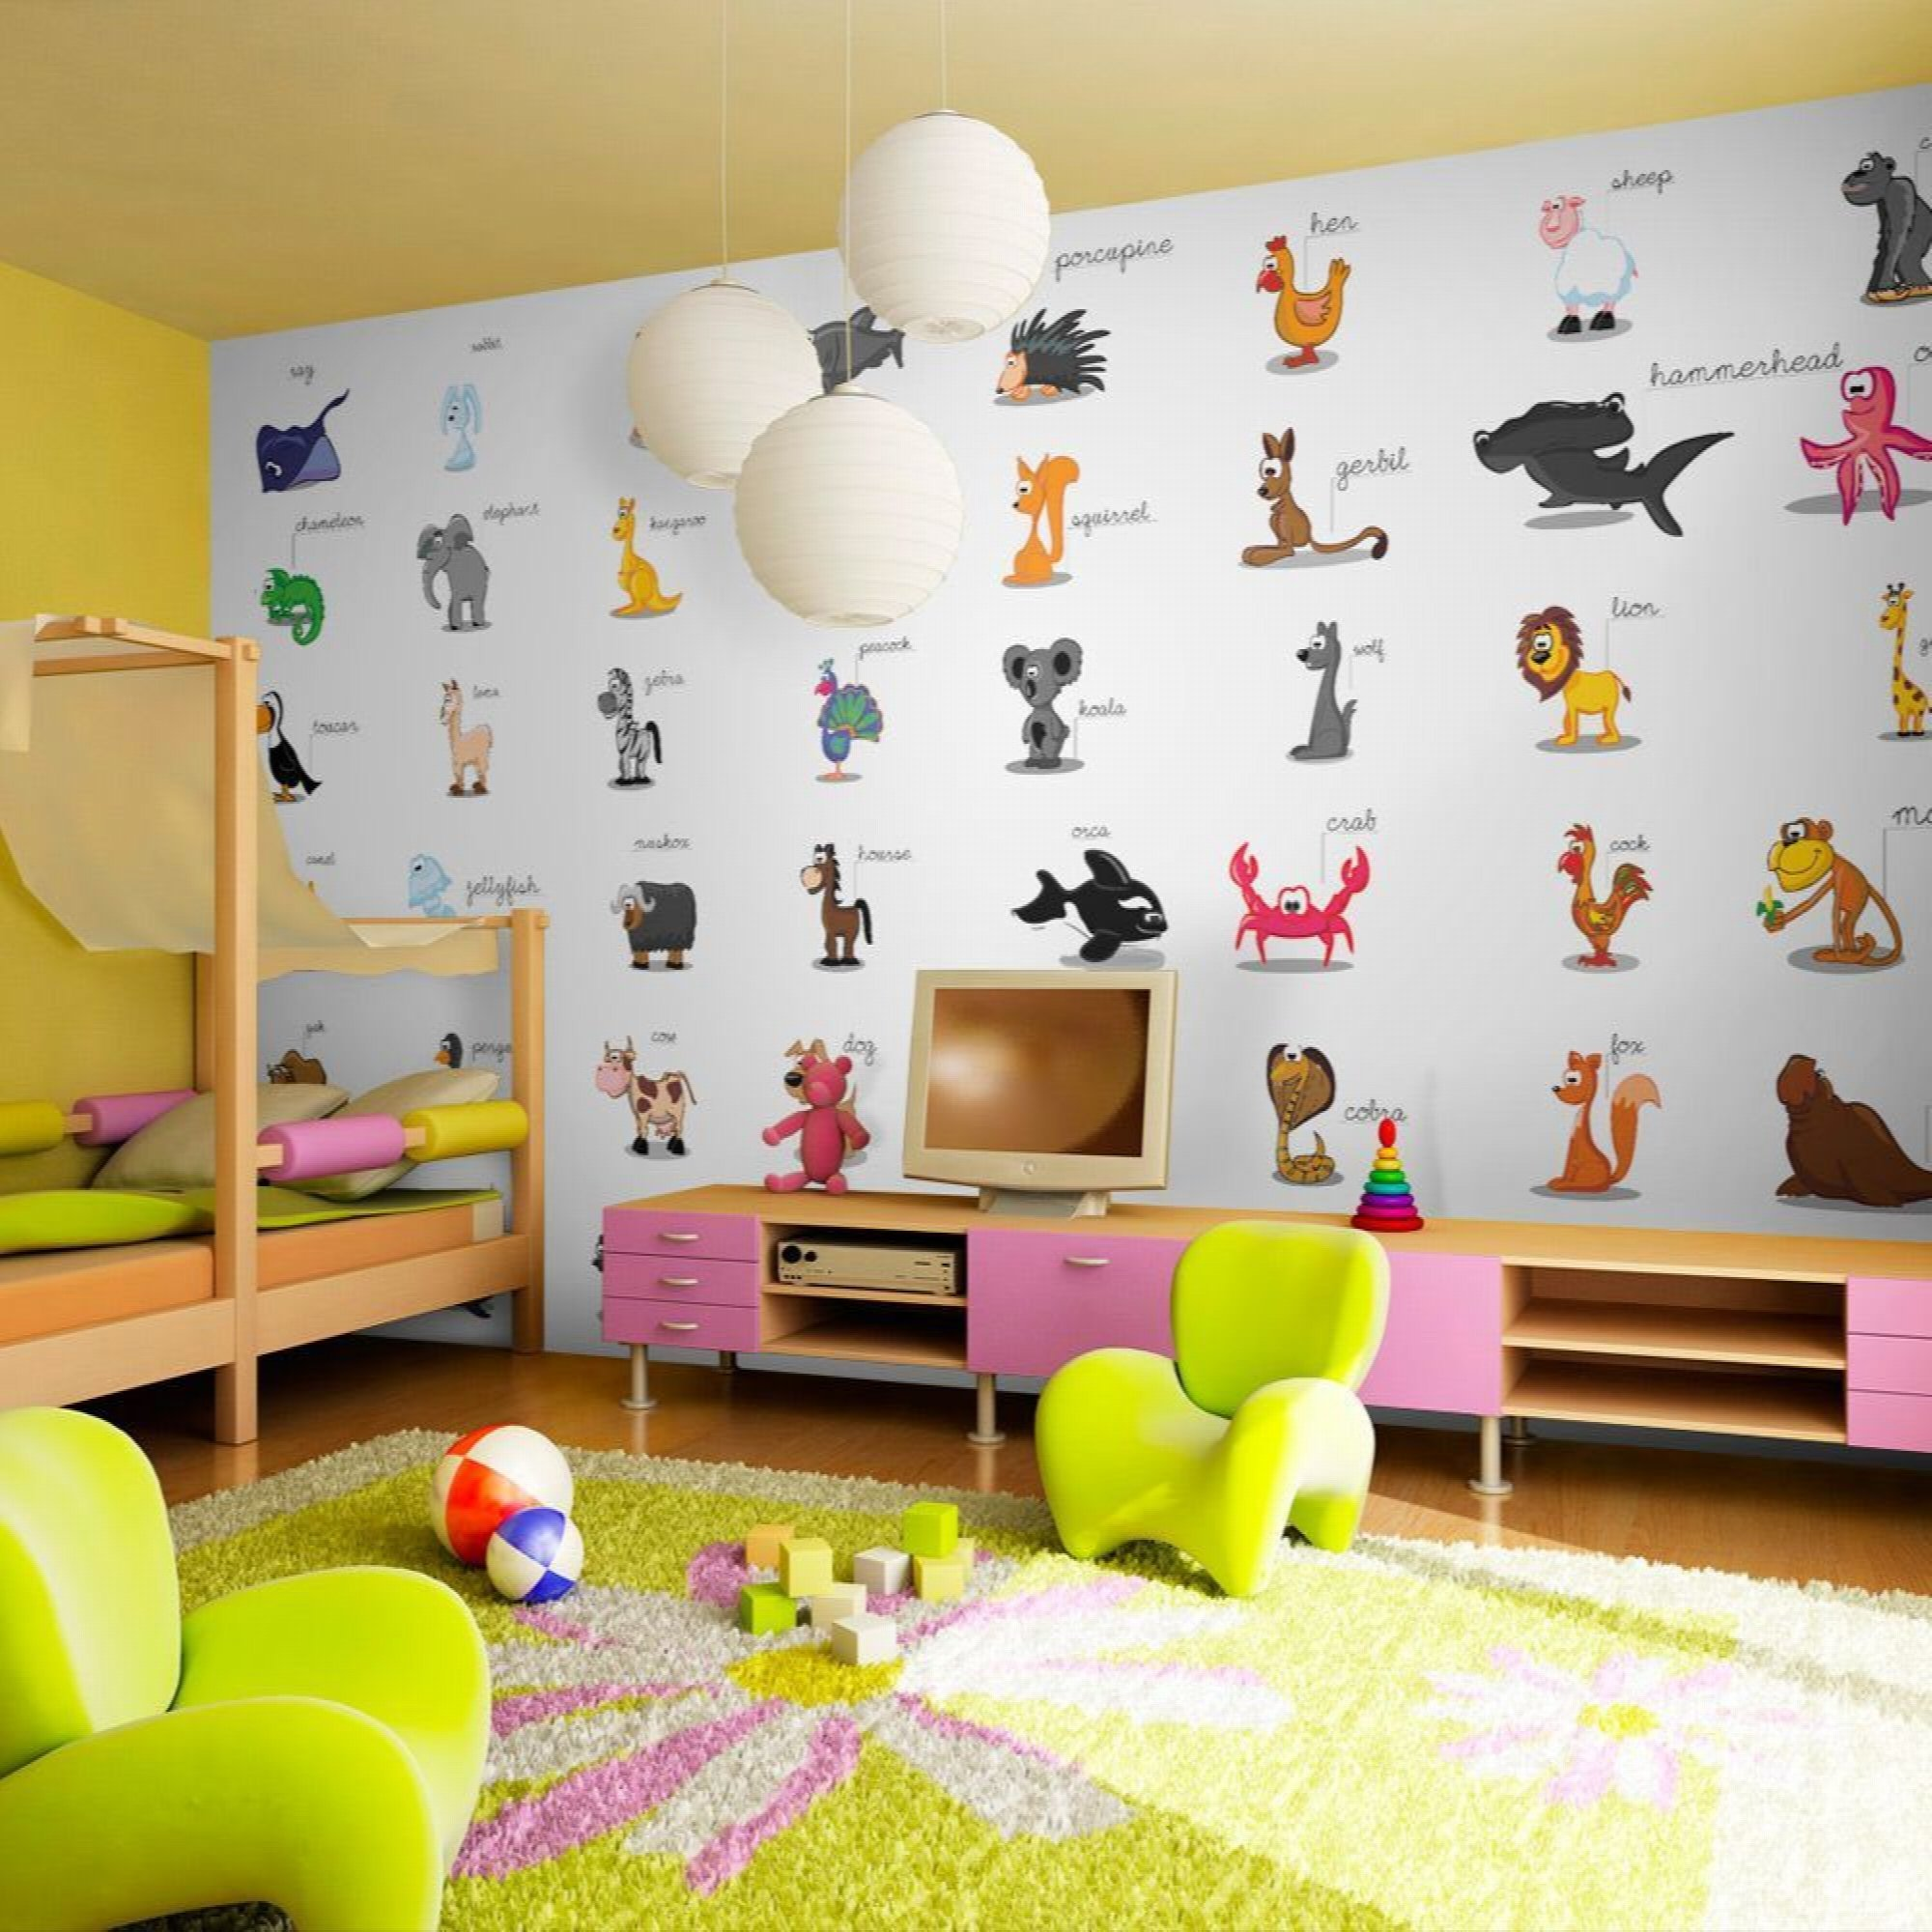 Papier peint enfant learning by playing 550x270